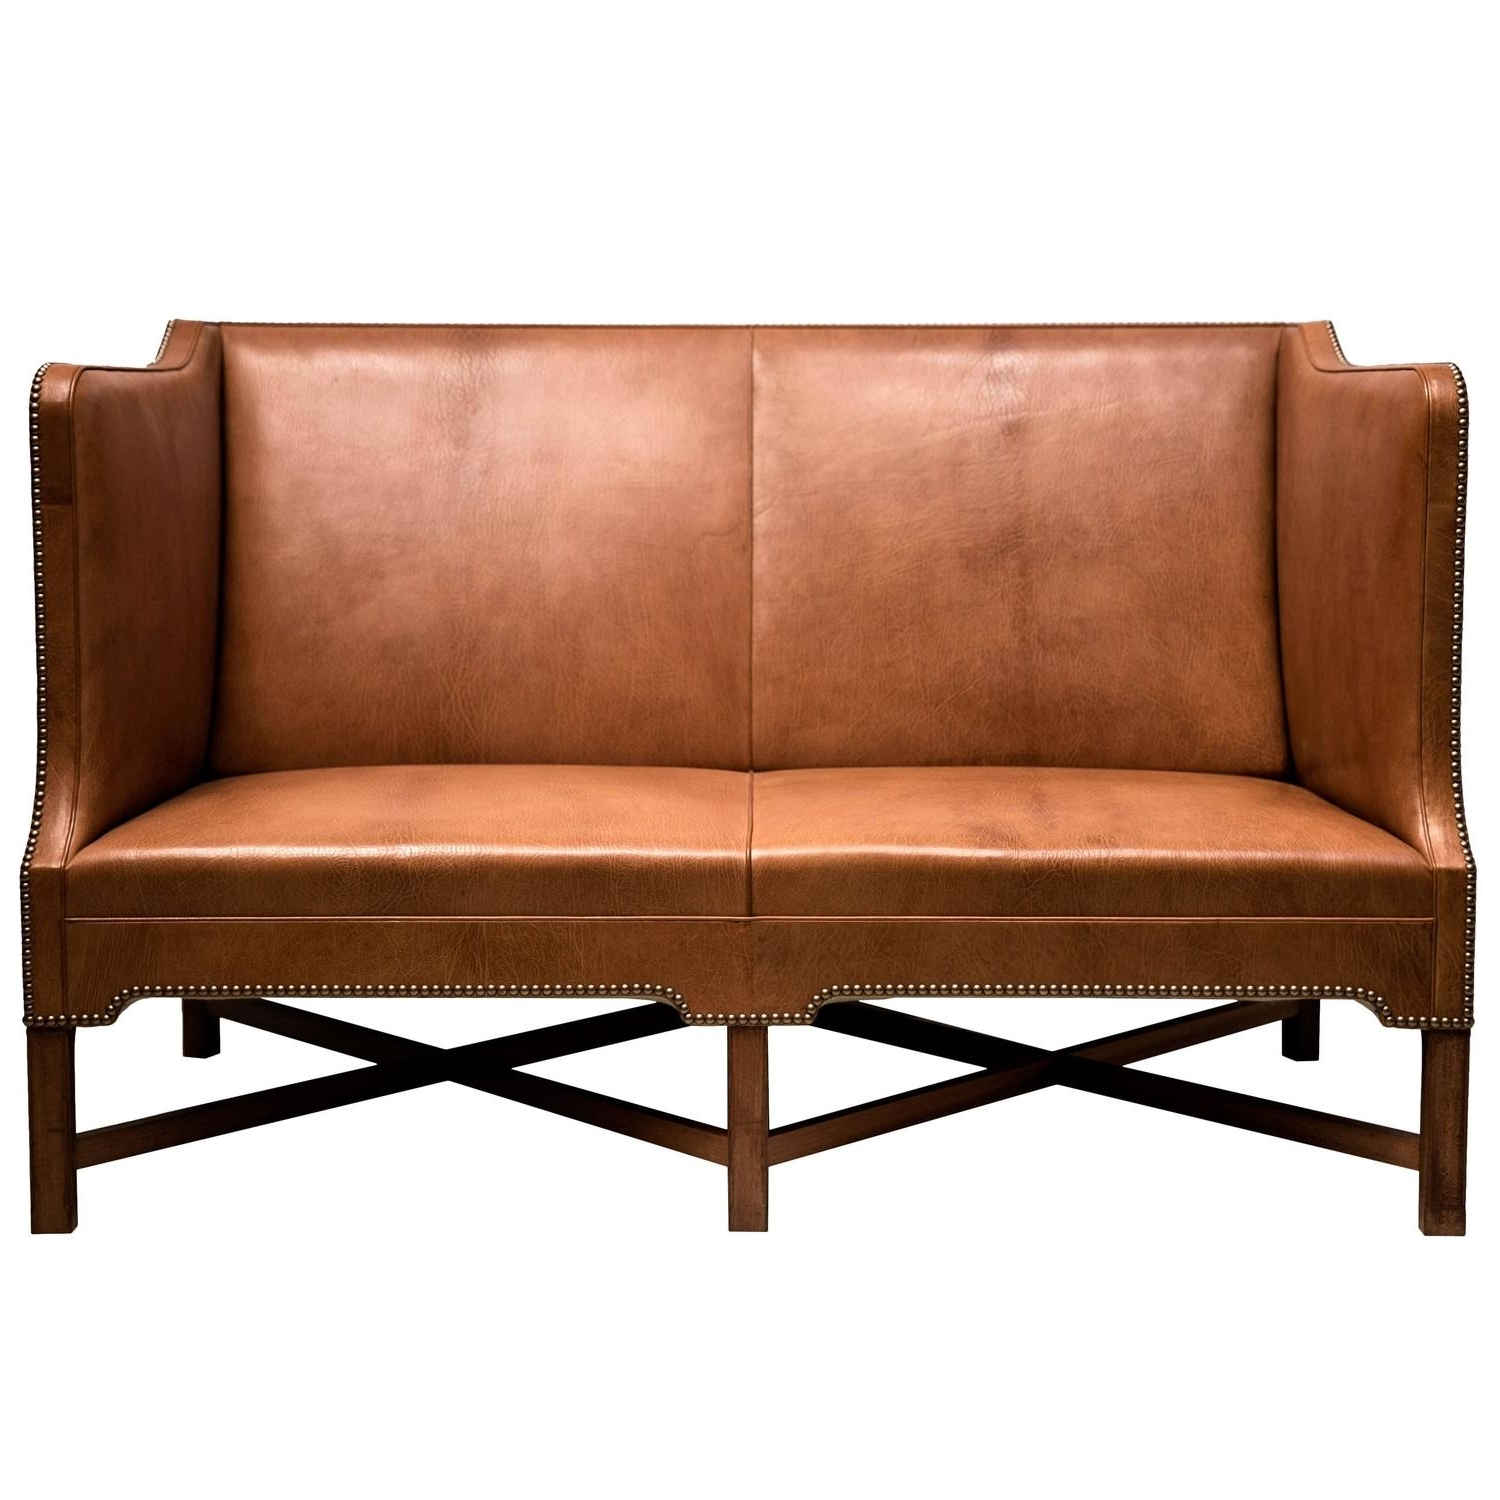 1930S Sofas – 122 For Sale At 1Stdibs With Most Popular 1930S Sofas (Gallery 6 of 15)